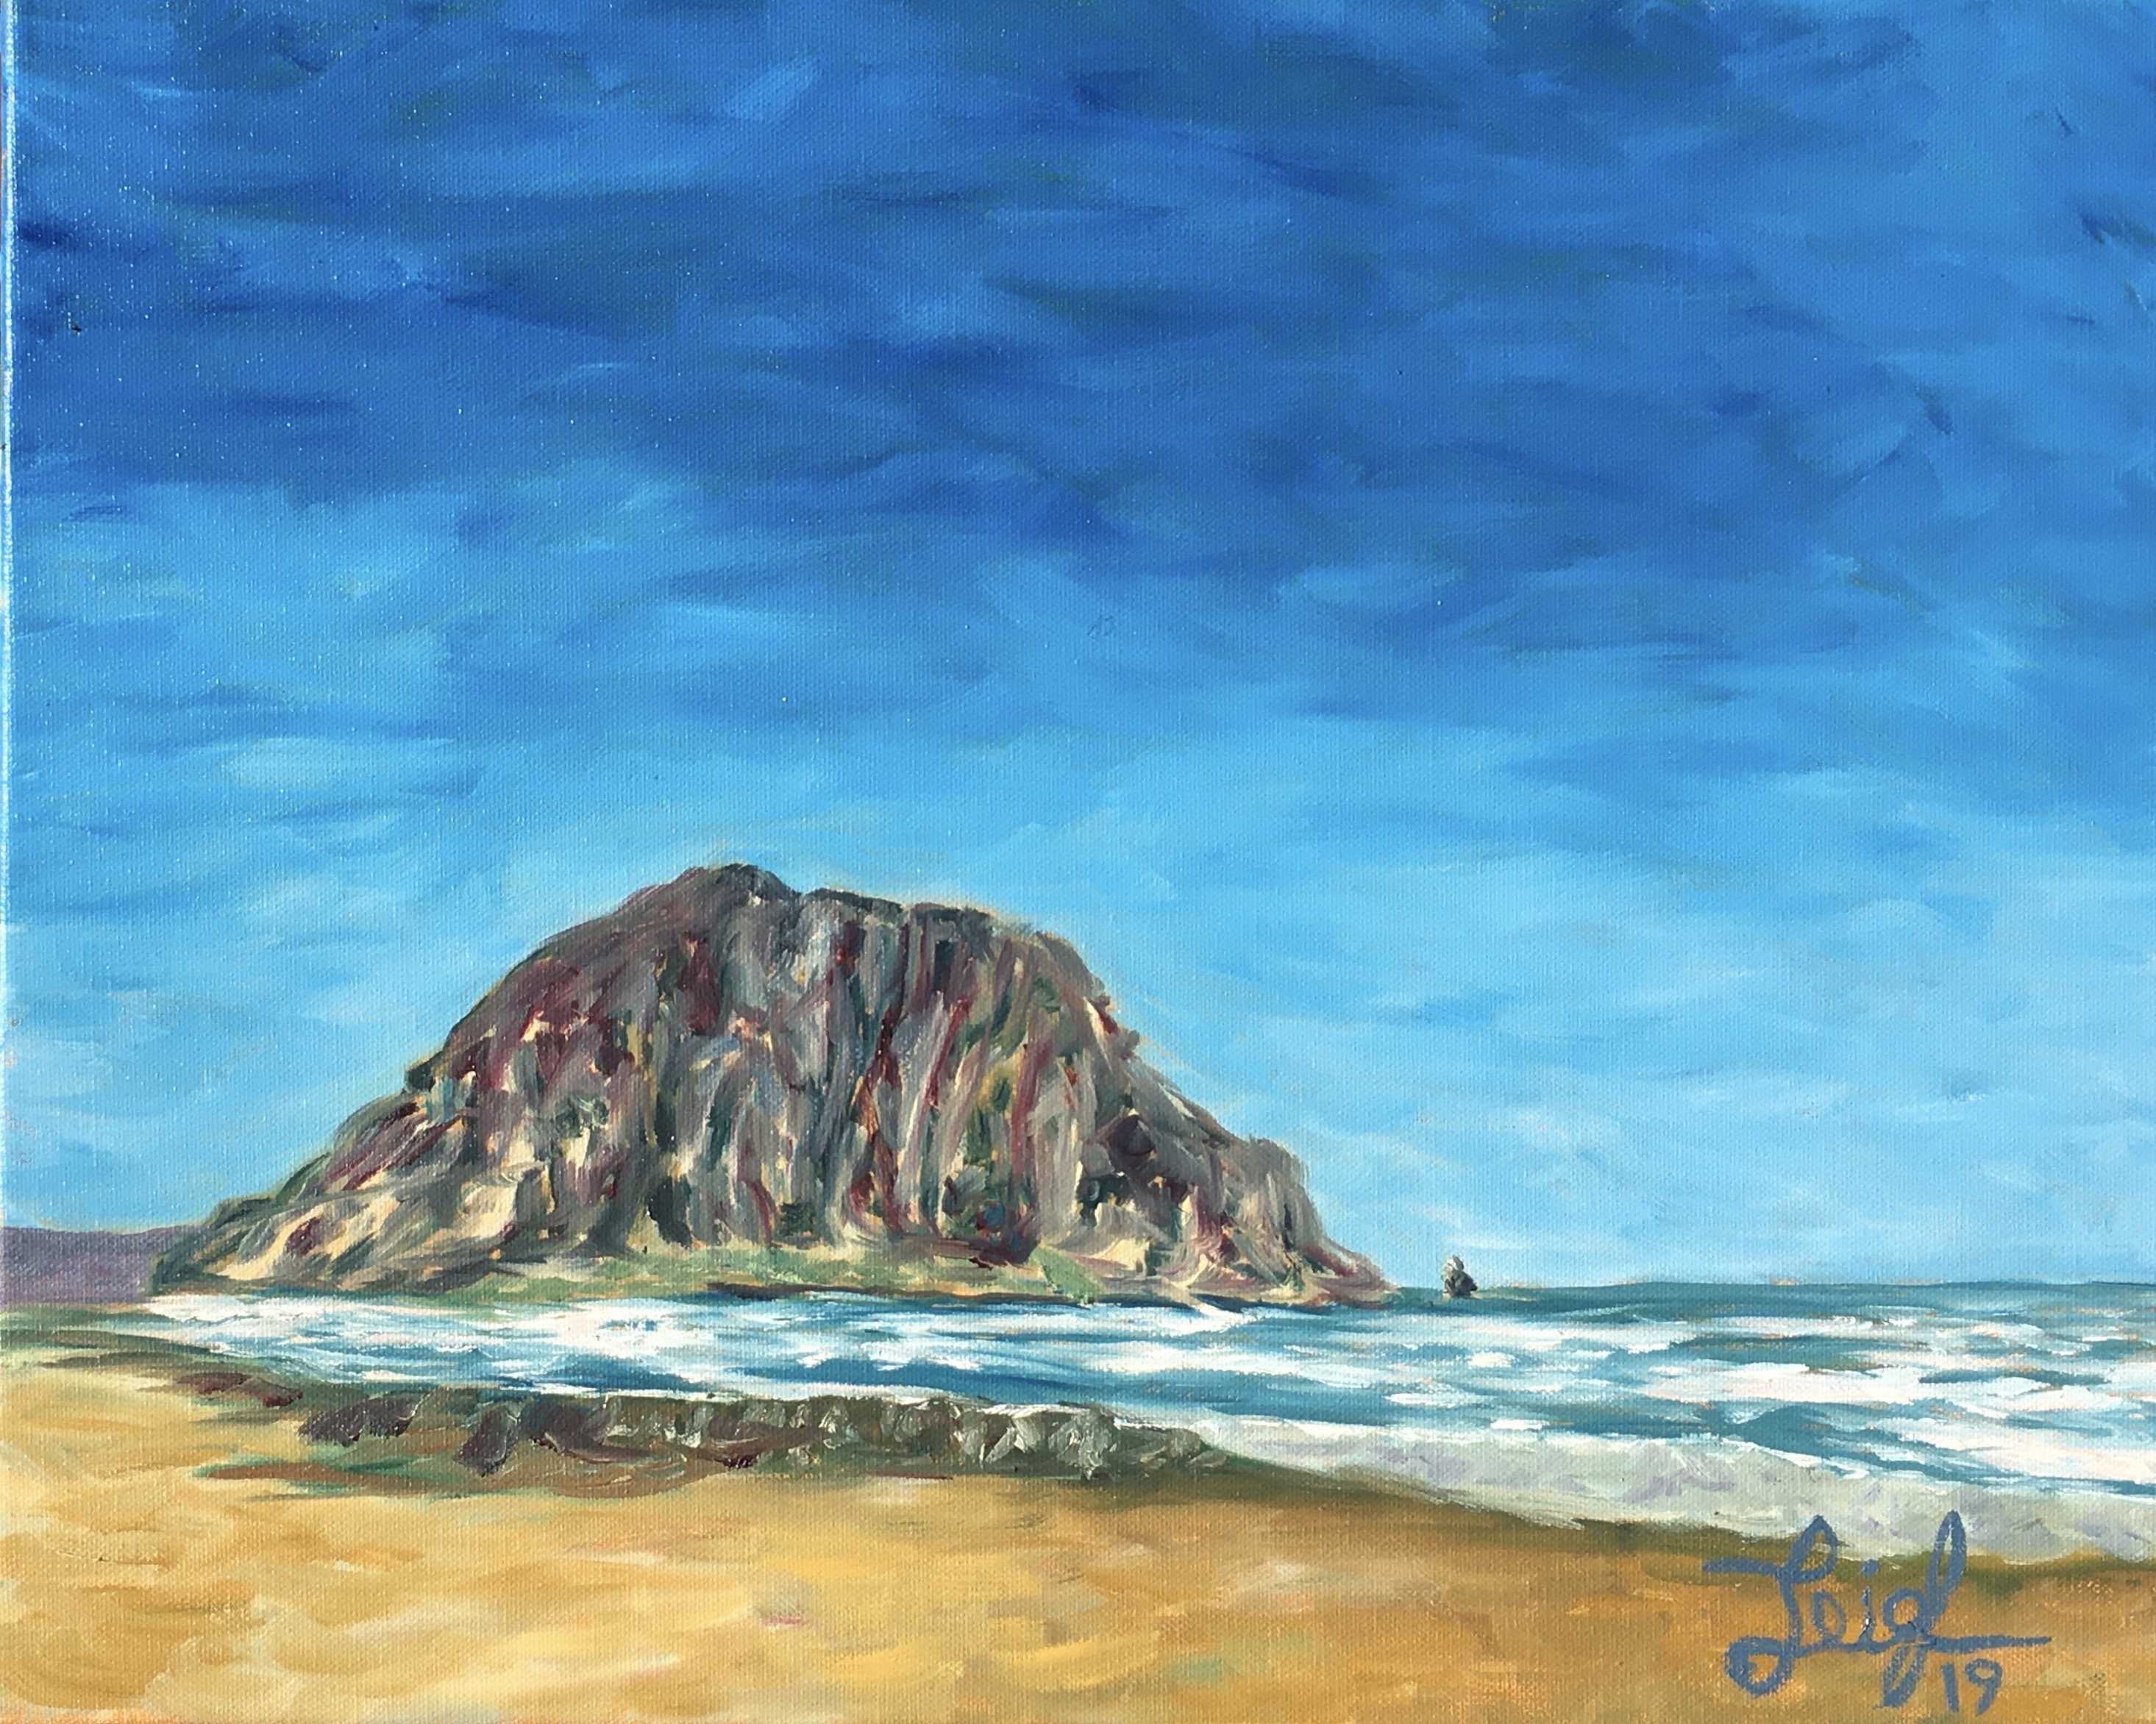 Morro Rock Series #1 (Étude) 2019  •  20 x 16